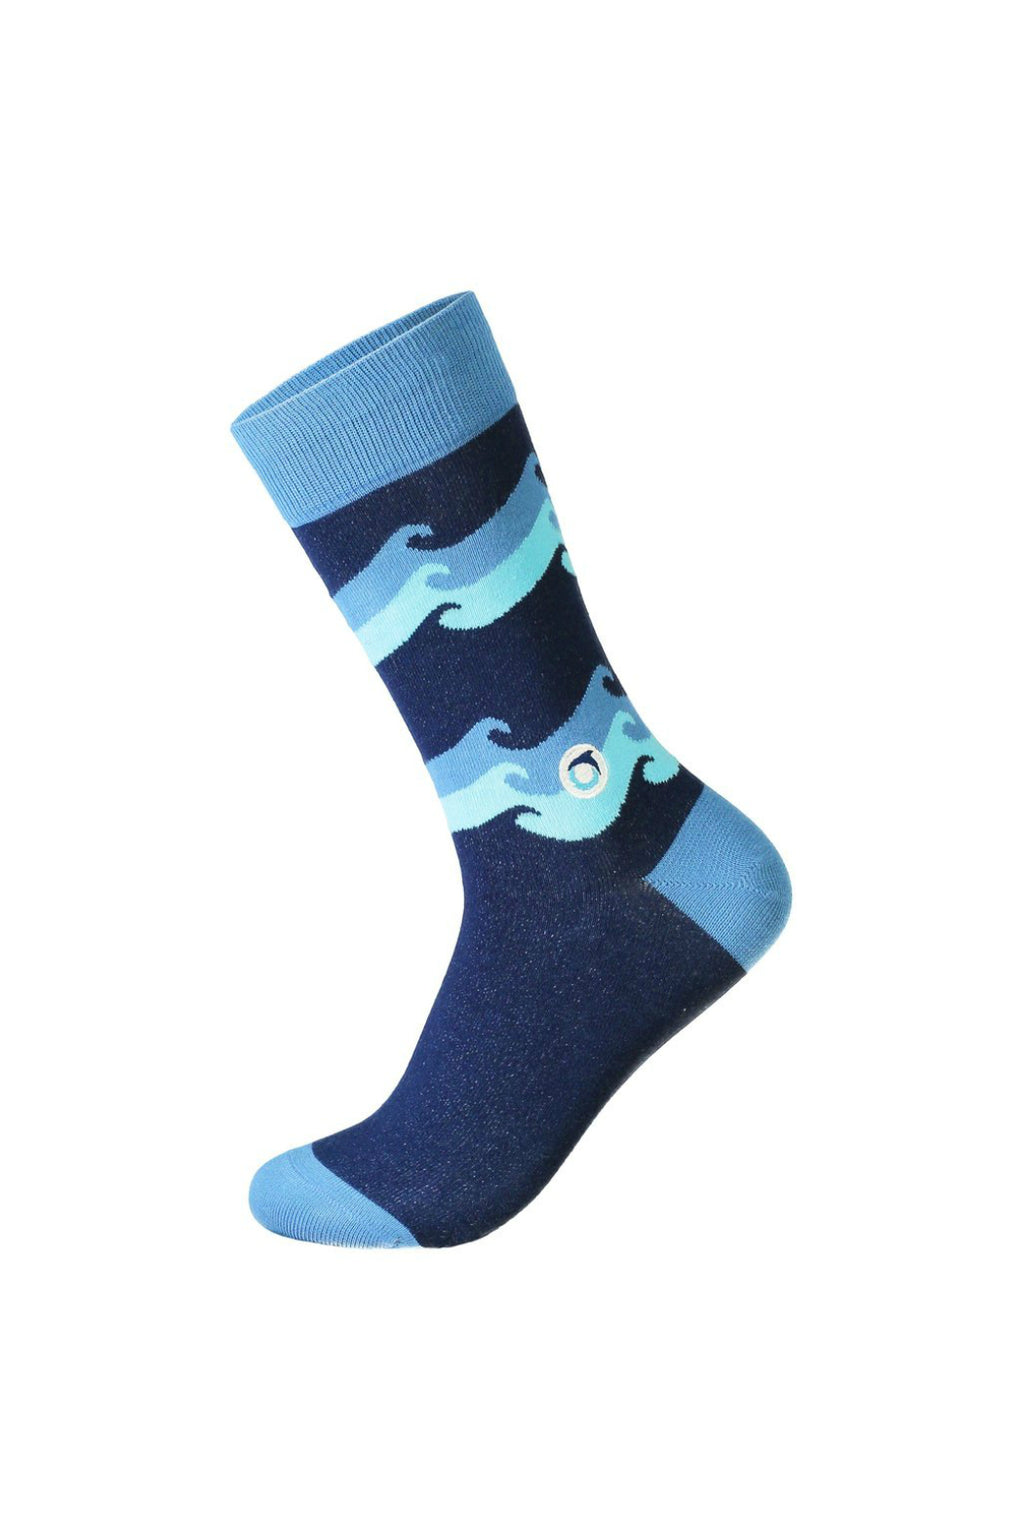 Conscious Step Socks that Protect Oceans - Navy Blue